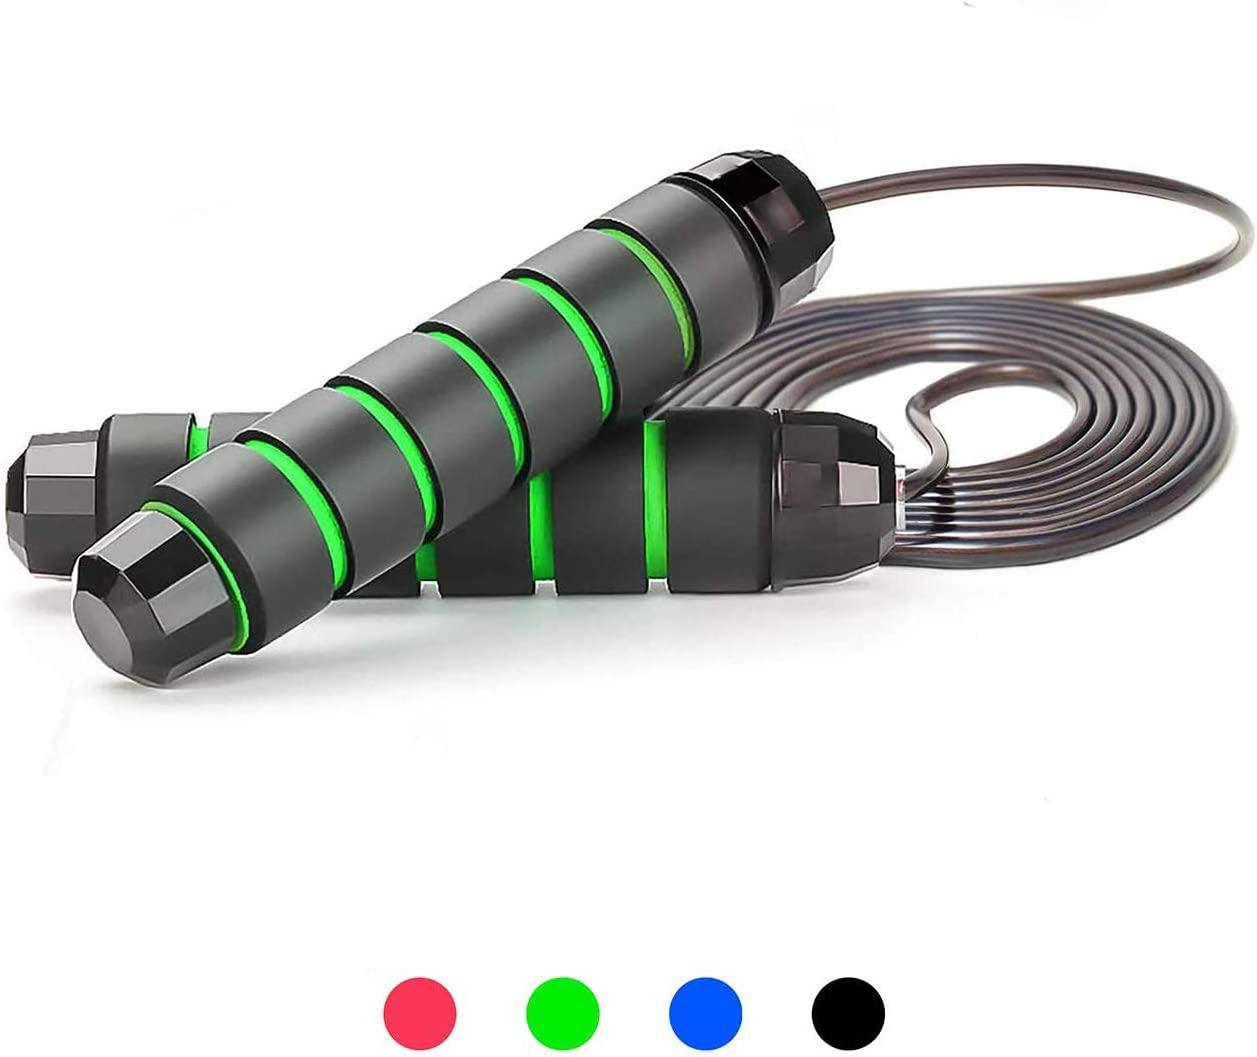 YEAQING Skipping Rope Workout Jump Rope Adjustable Tangle-Free with Soft Handle for Fitness Exercise for Women and Men